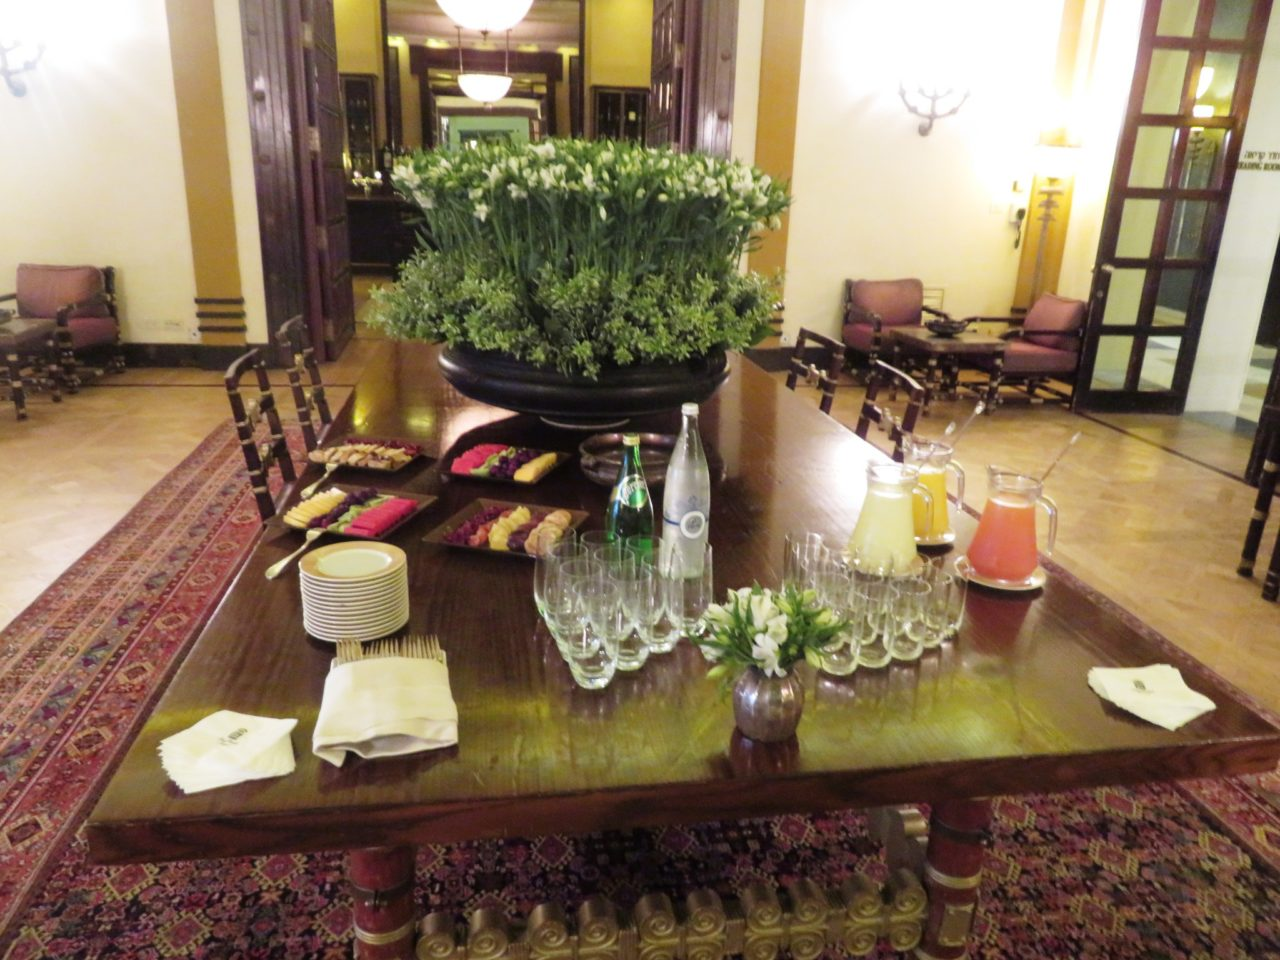 King David Hotel, Jerusalem Israel - Light refreshments in the Reading Room ... on the table used for signing the historic peace treaty between Israel and Jordan !